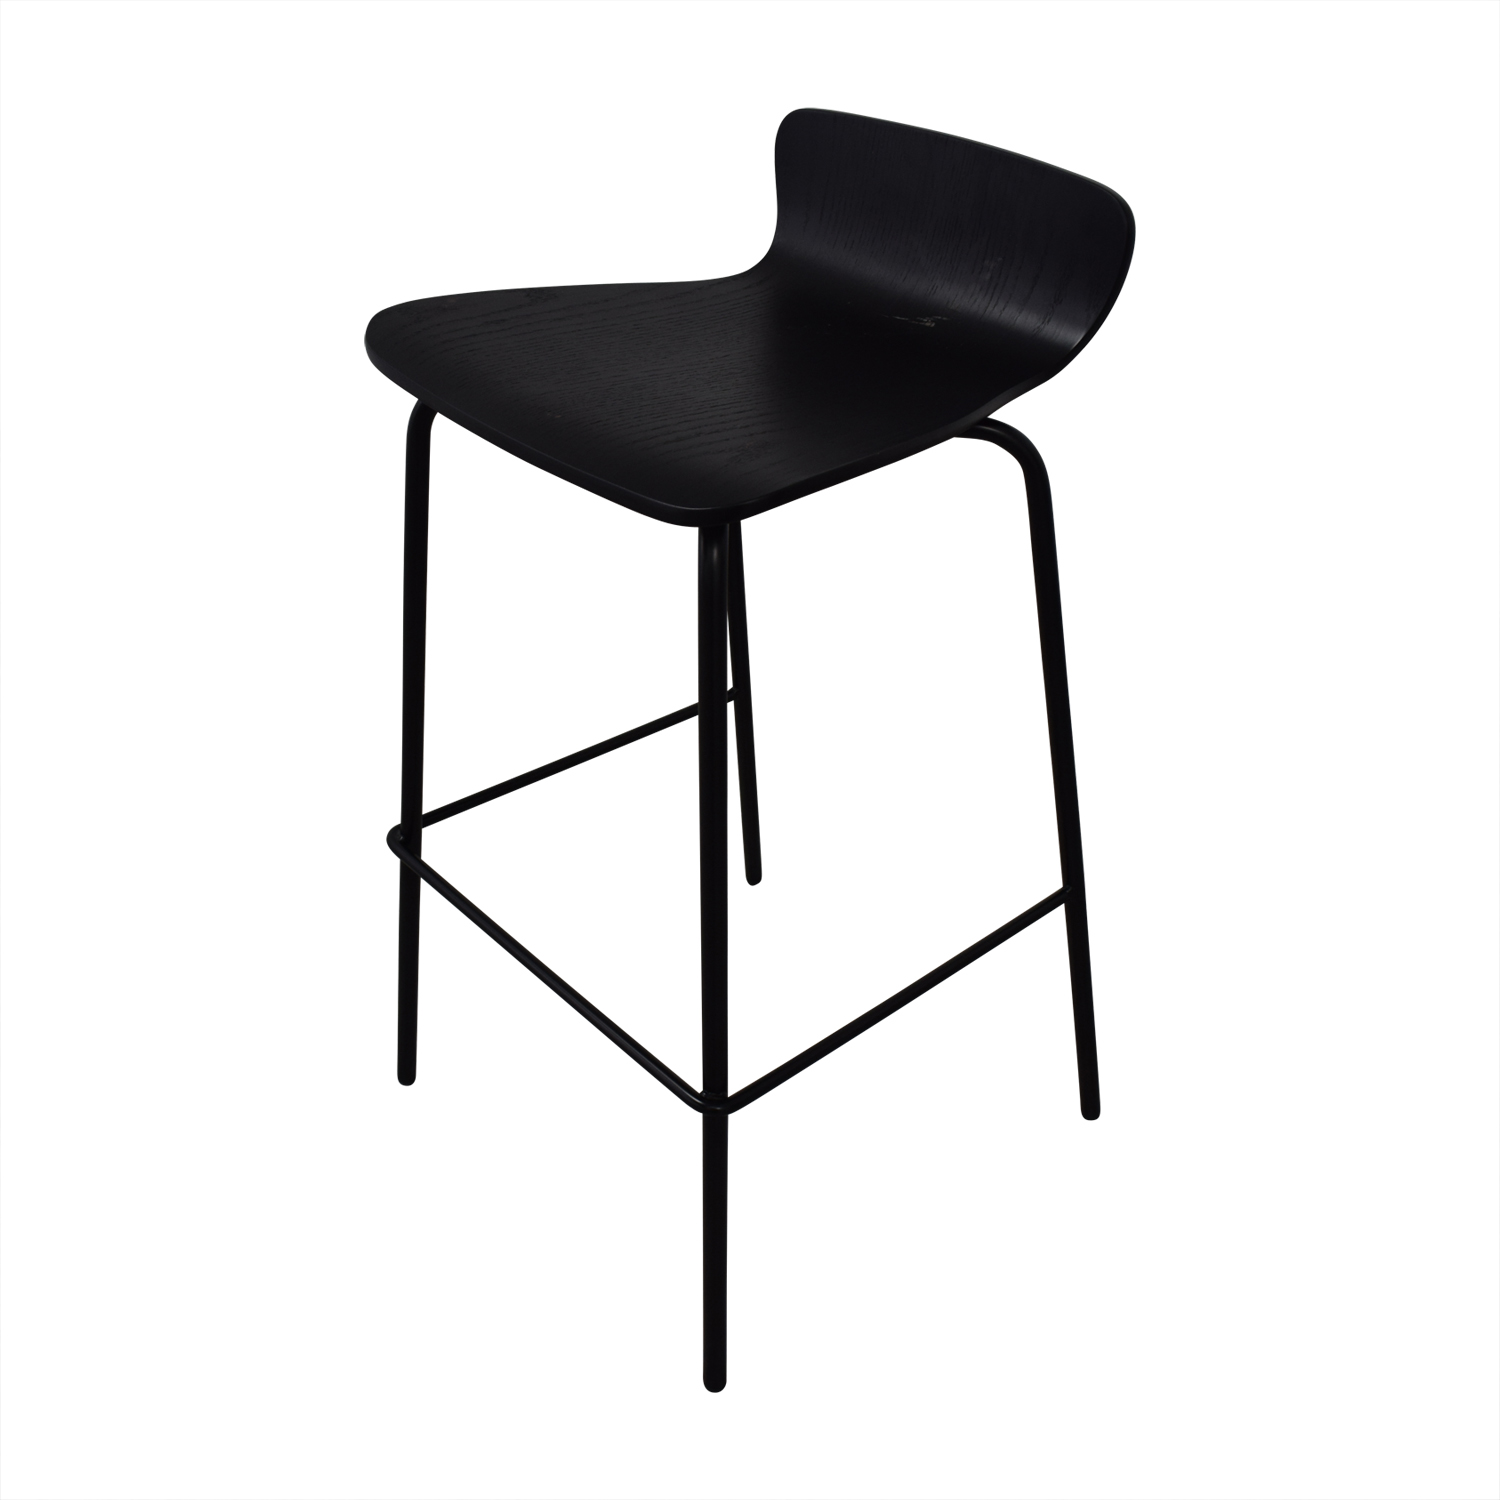 Crate & Barrel Felix Black Counter Stools / Stools